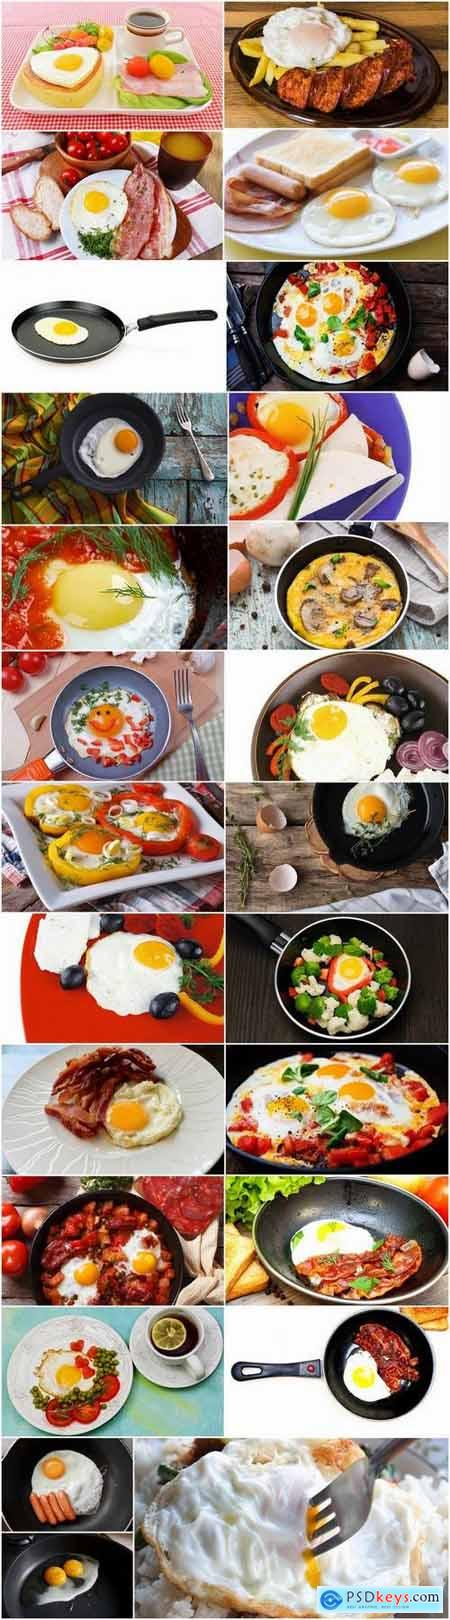 Delicious fried eggs 25 HQ Jpeg